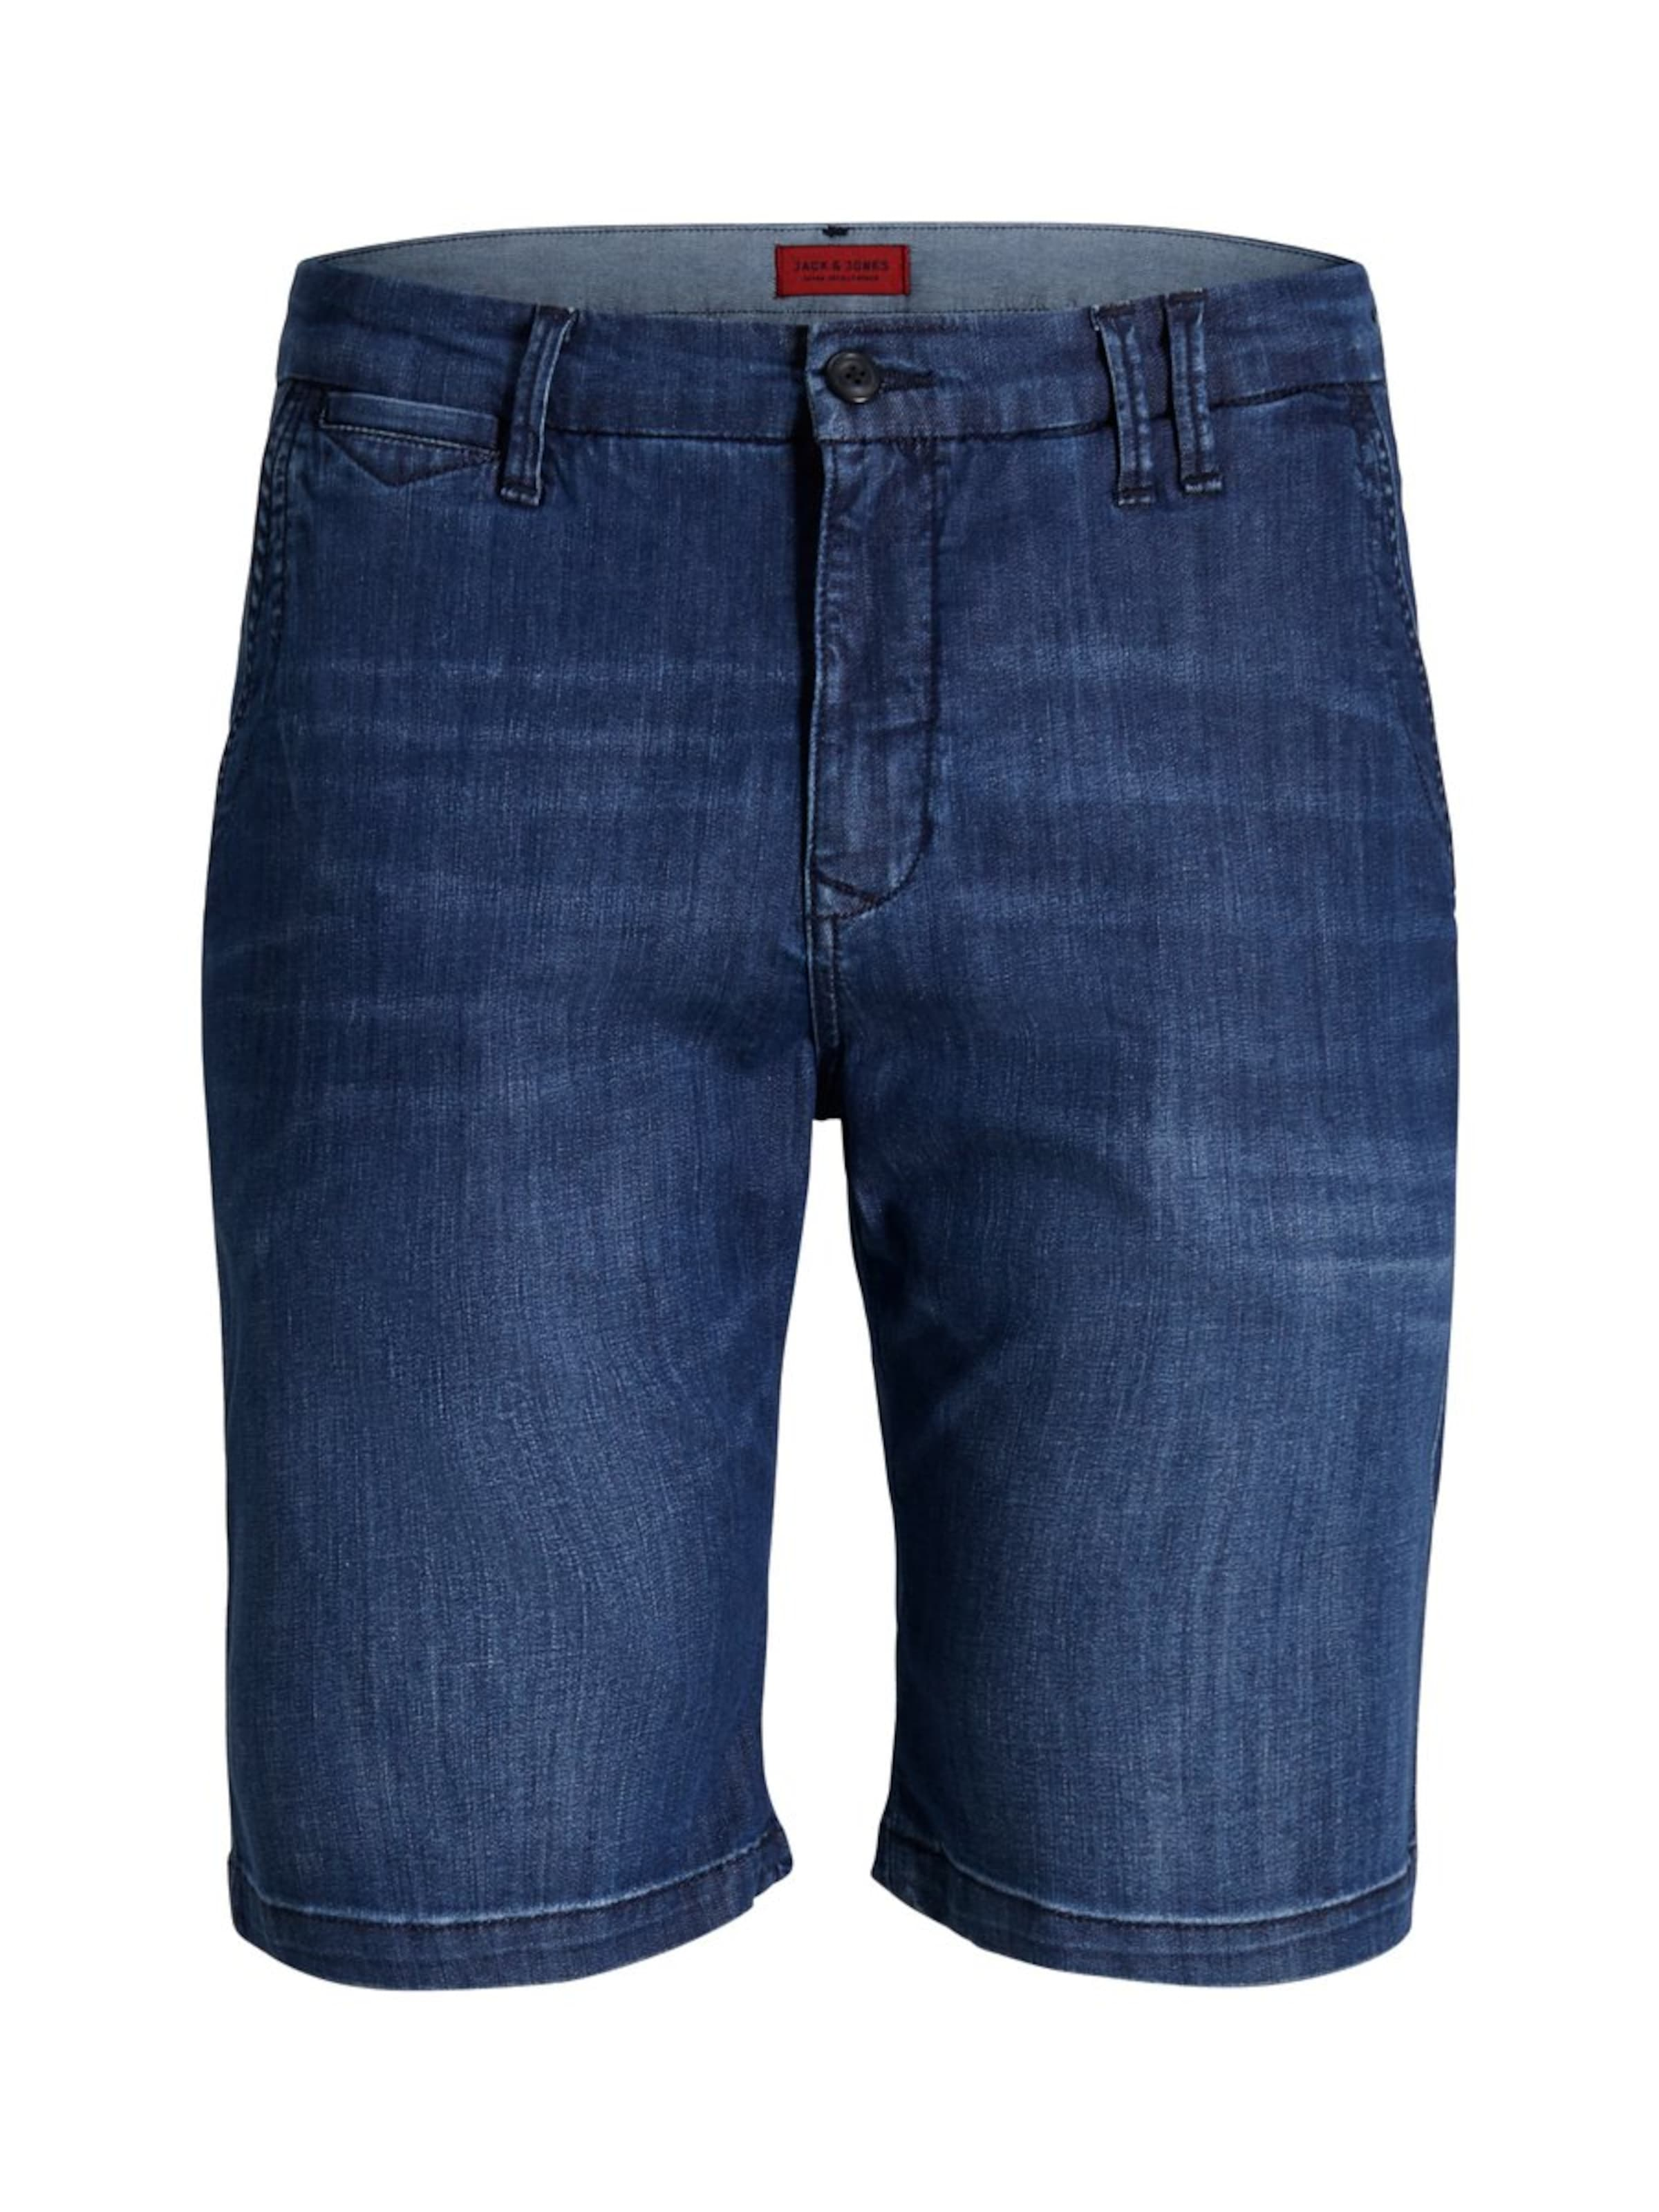 Jones Jackamp; Jean Bleu Denim En 29DHYEWI